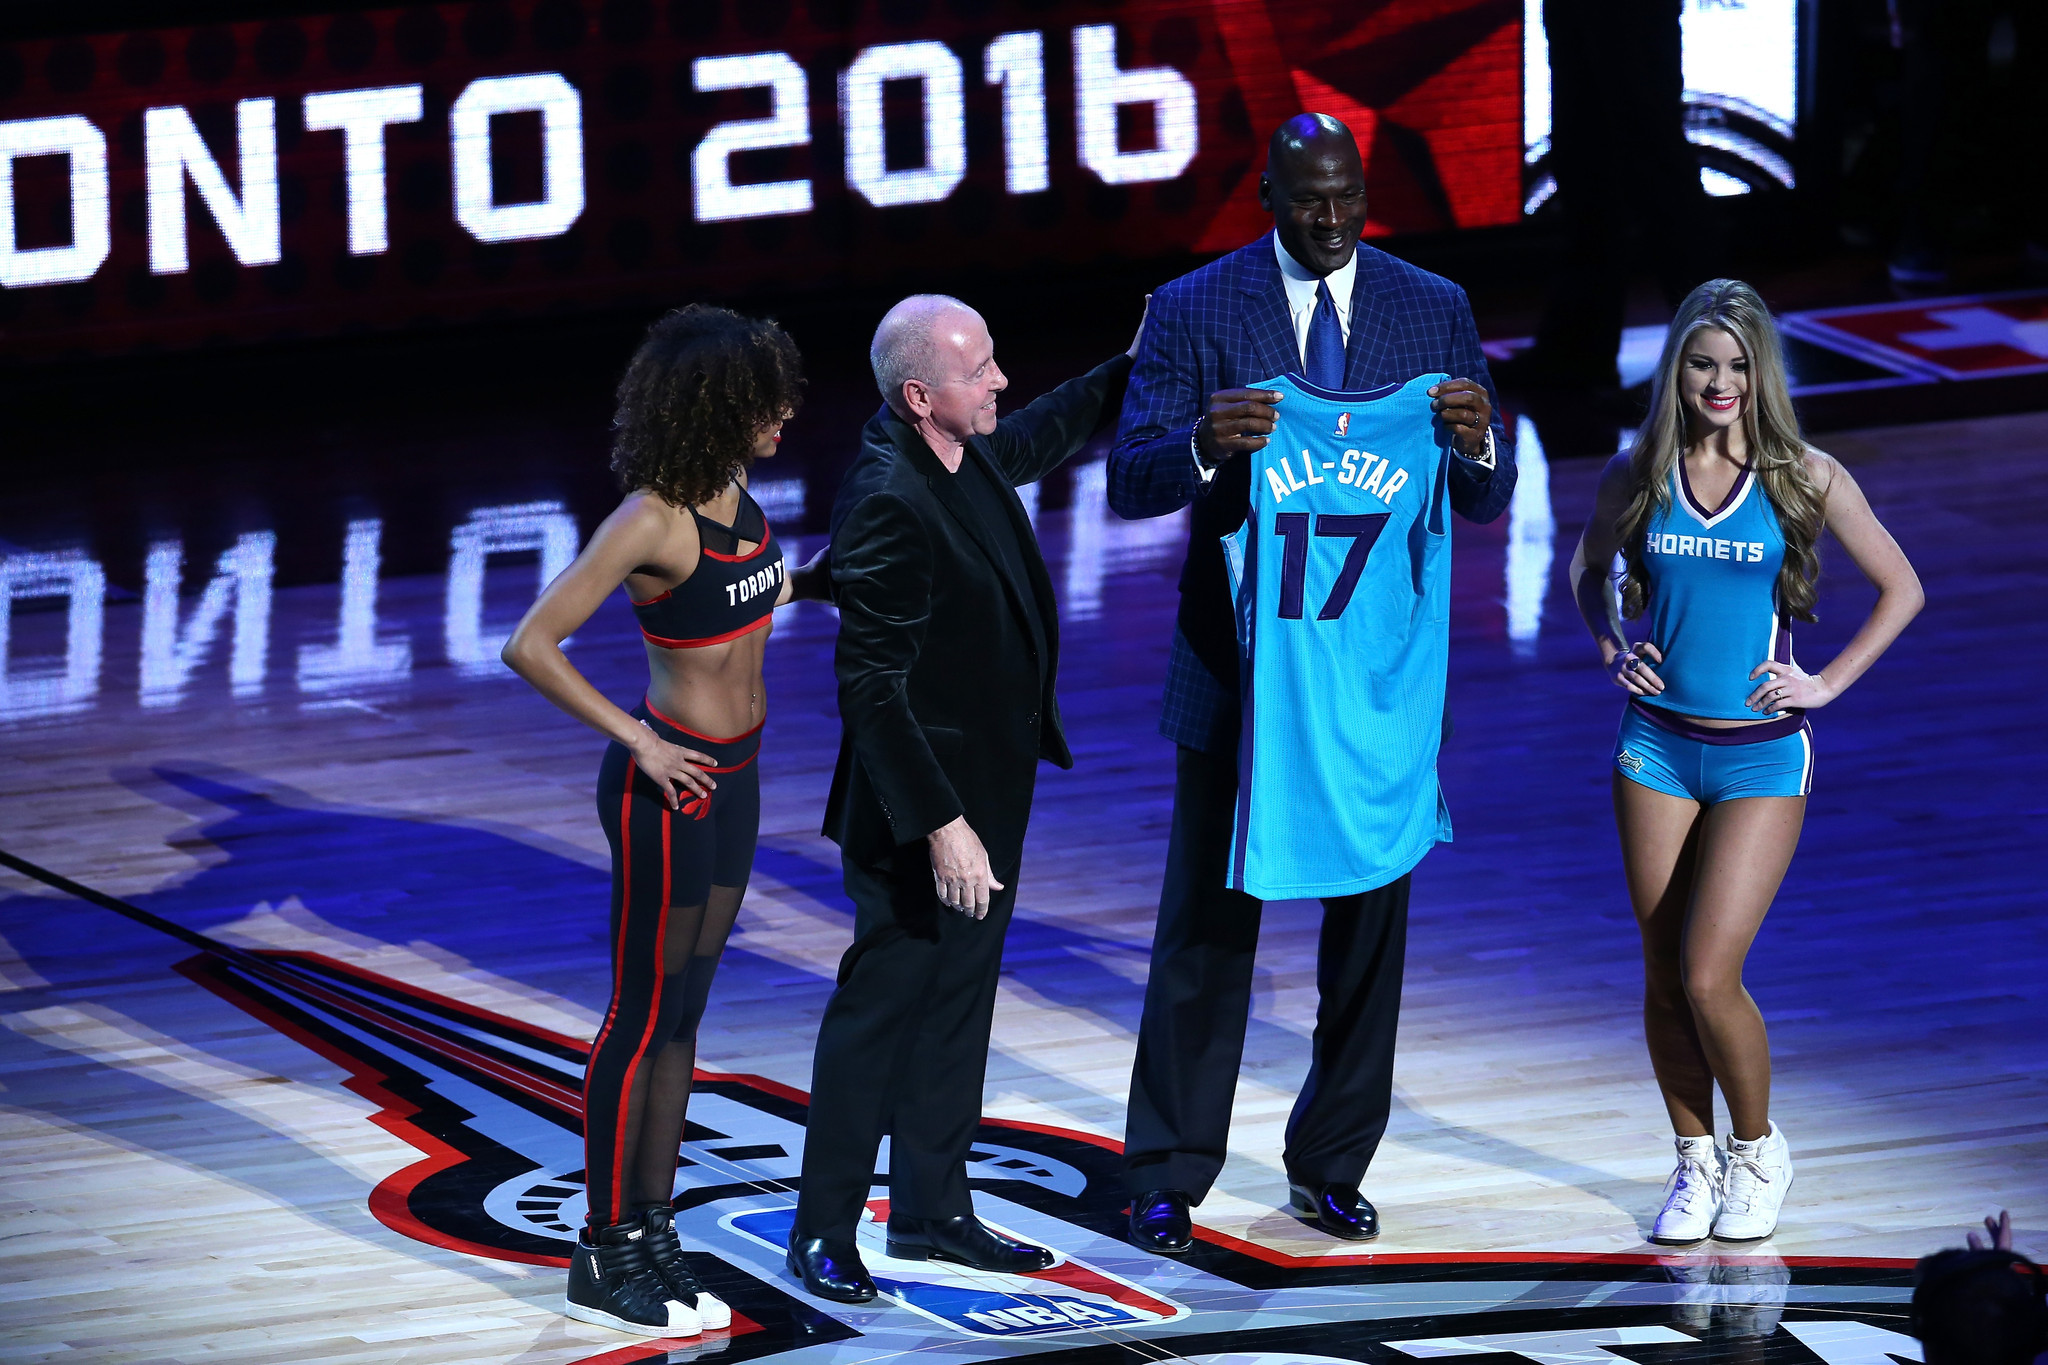 2017 all star game tickets nba - New North Carolina Law Could Cost Charlotte The Nba All Star Game Chicago Tribune